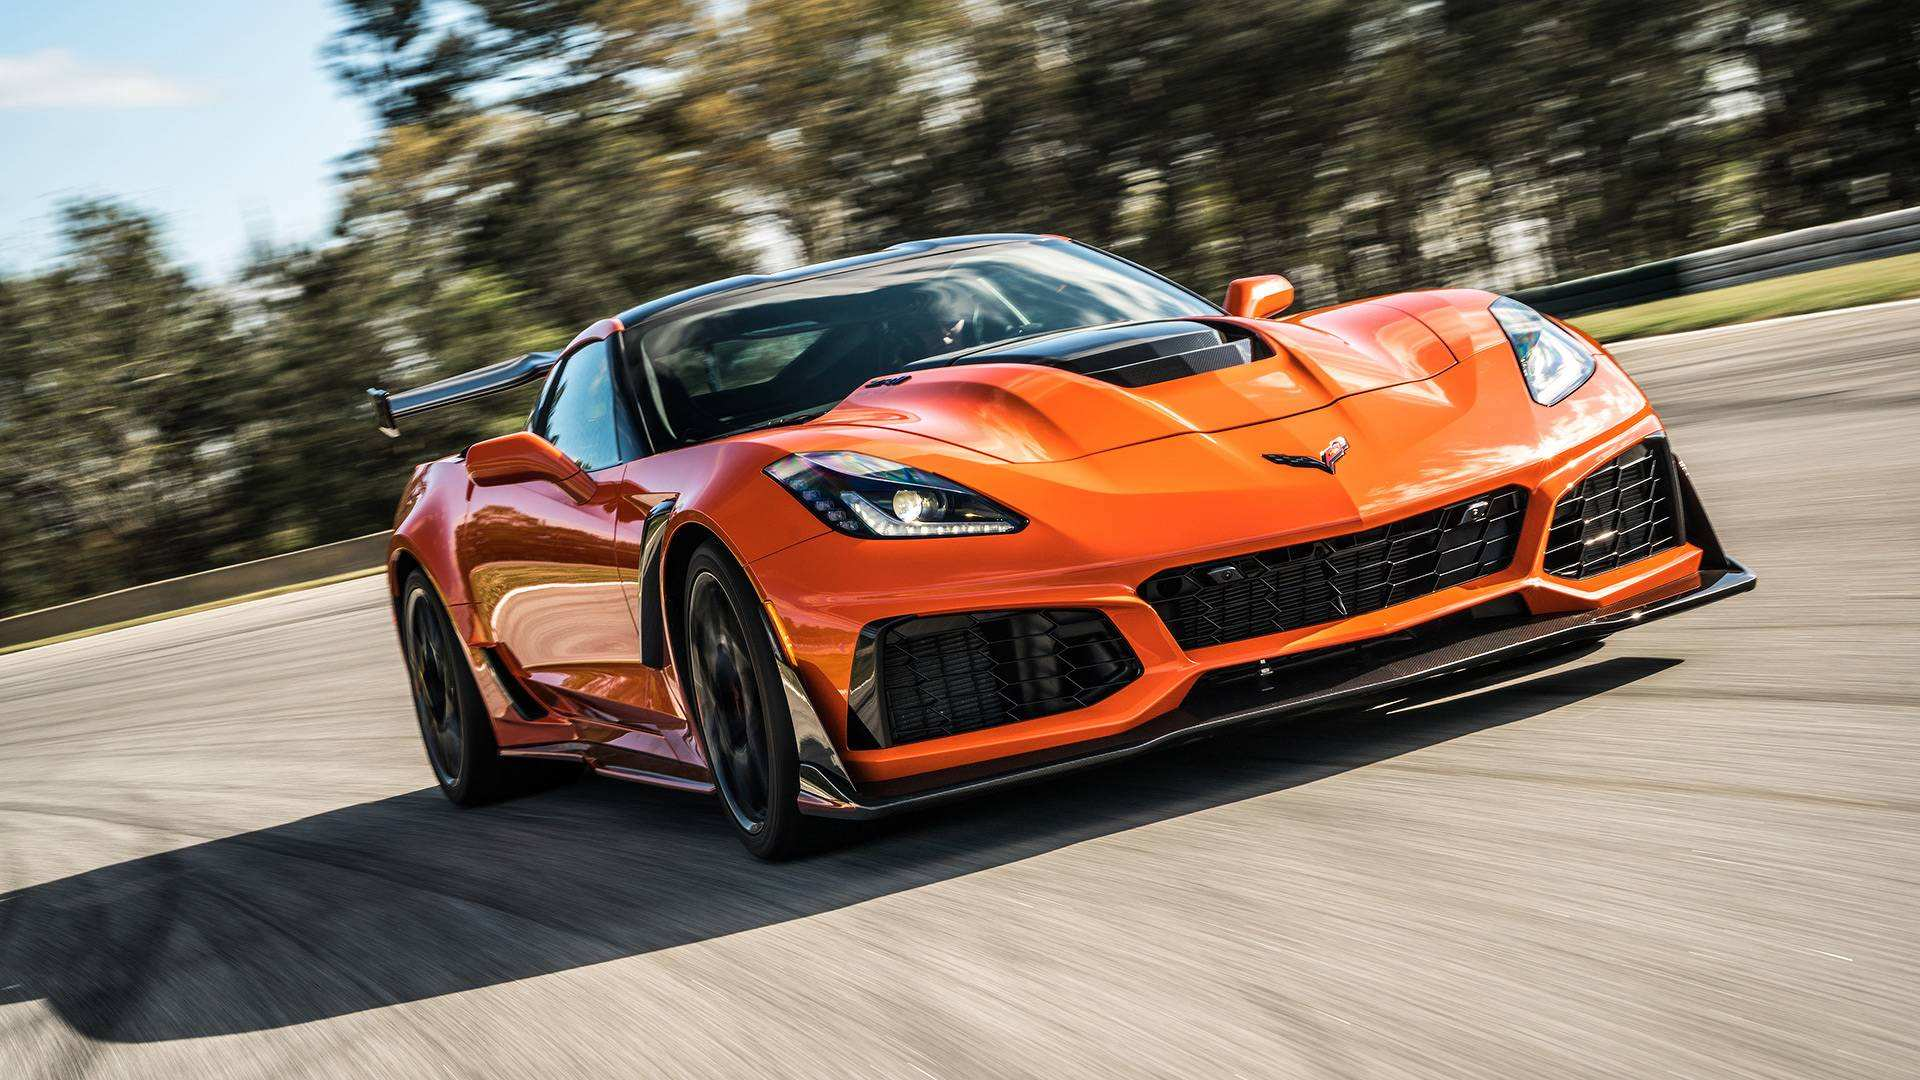 72 The 2019 Chevrolet Corvette Zr1 Ratings with 2019 Chevrolet Corvette Zr1